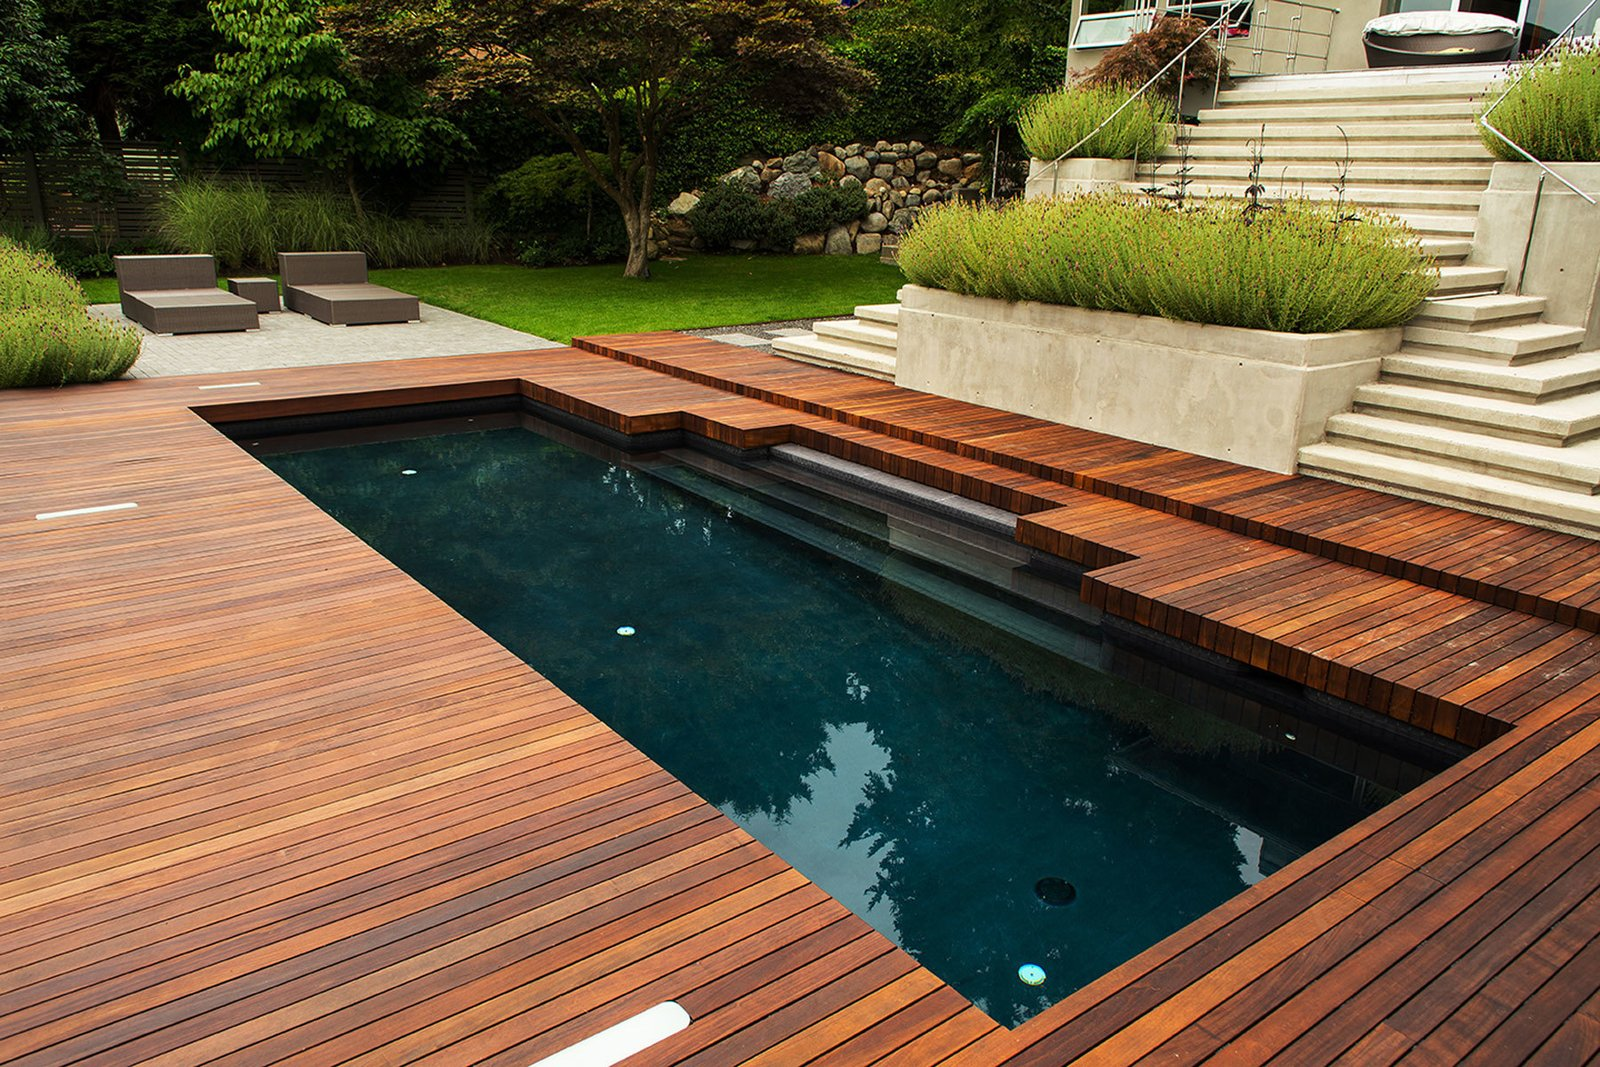 Black Pool Take a Plunge Into These Enticing Modern Pools - Photo 6 of 12